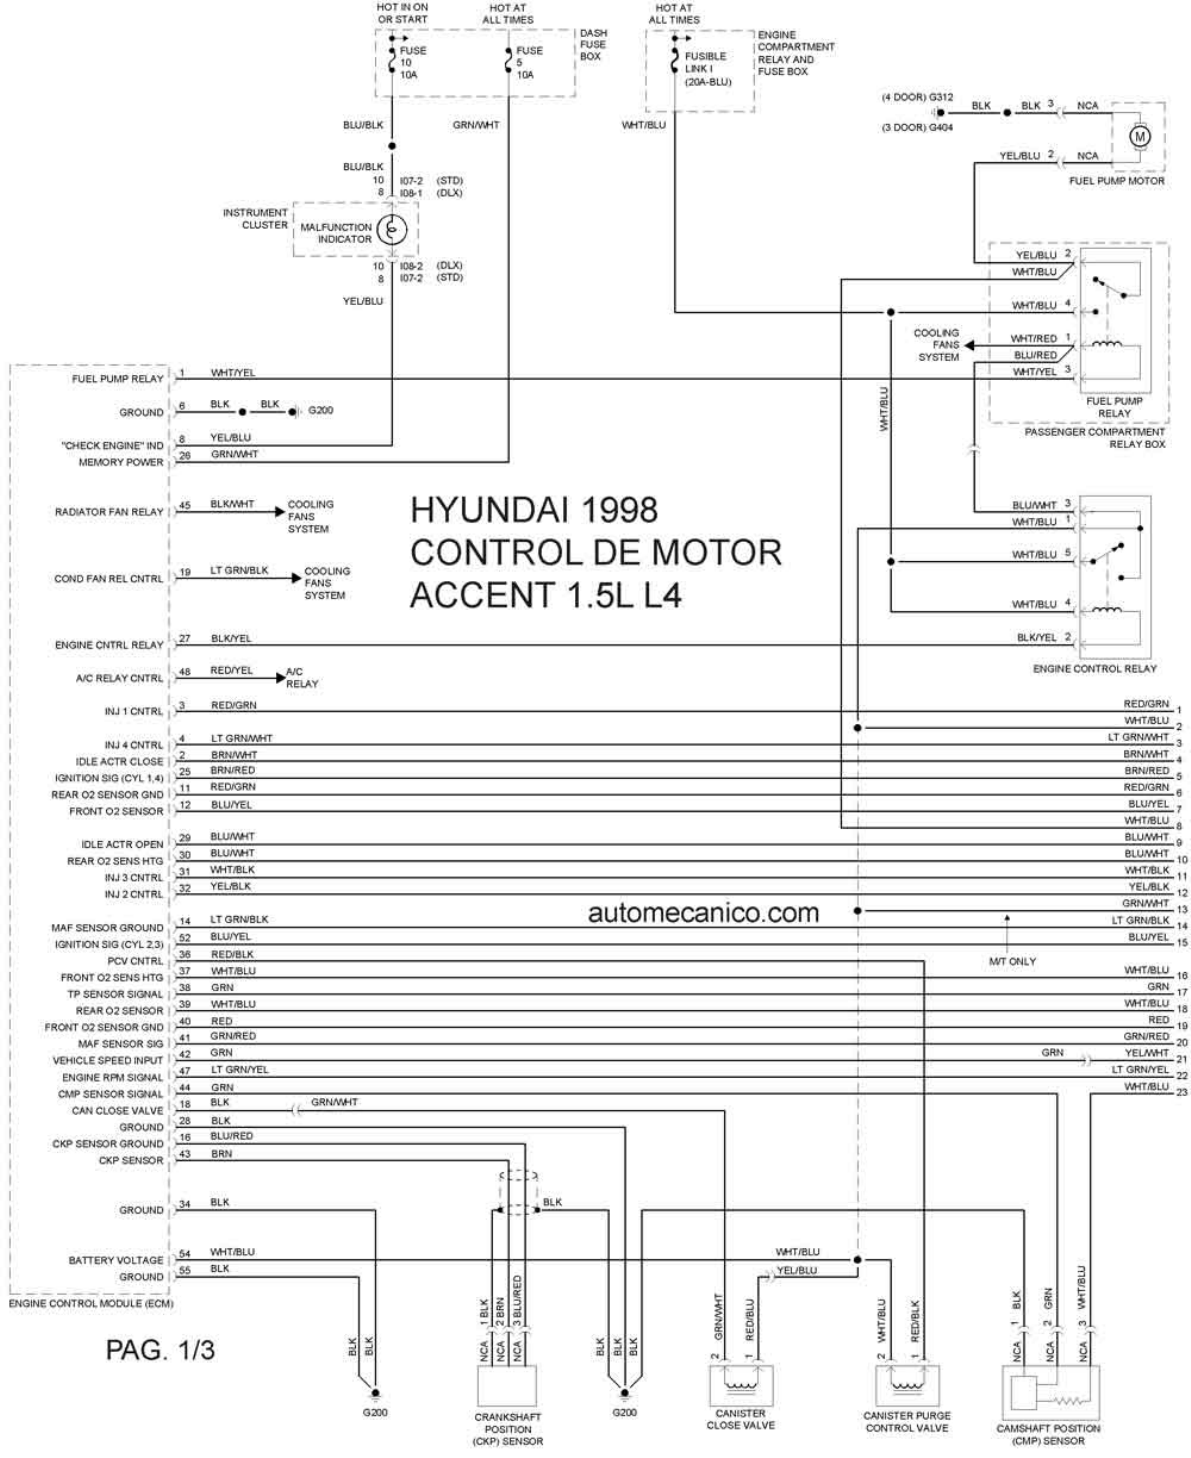 hight resolution of hyundai accent 1998 misc document wiring diagram pdf 1998 hyundai excel radio wiring diagram hyundai excel wiring diagram 1998